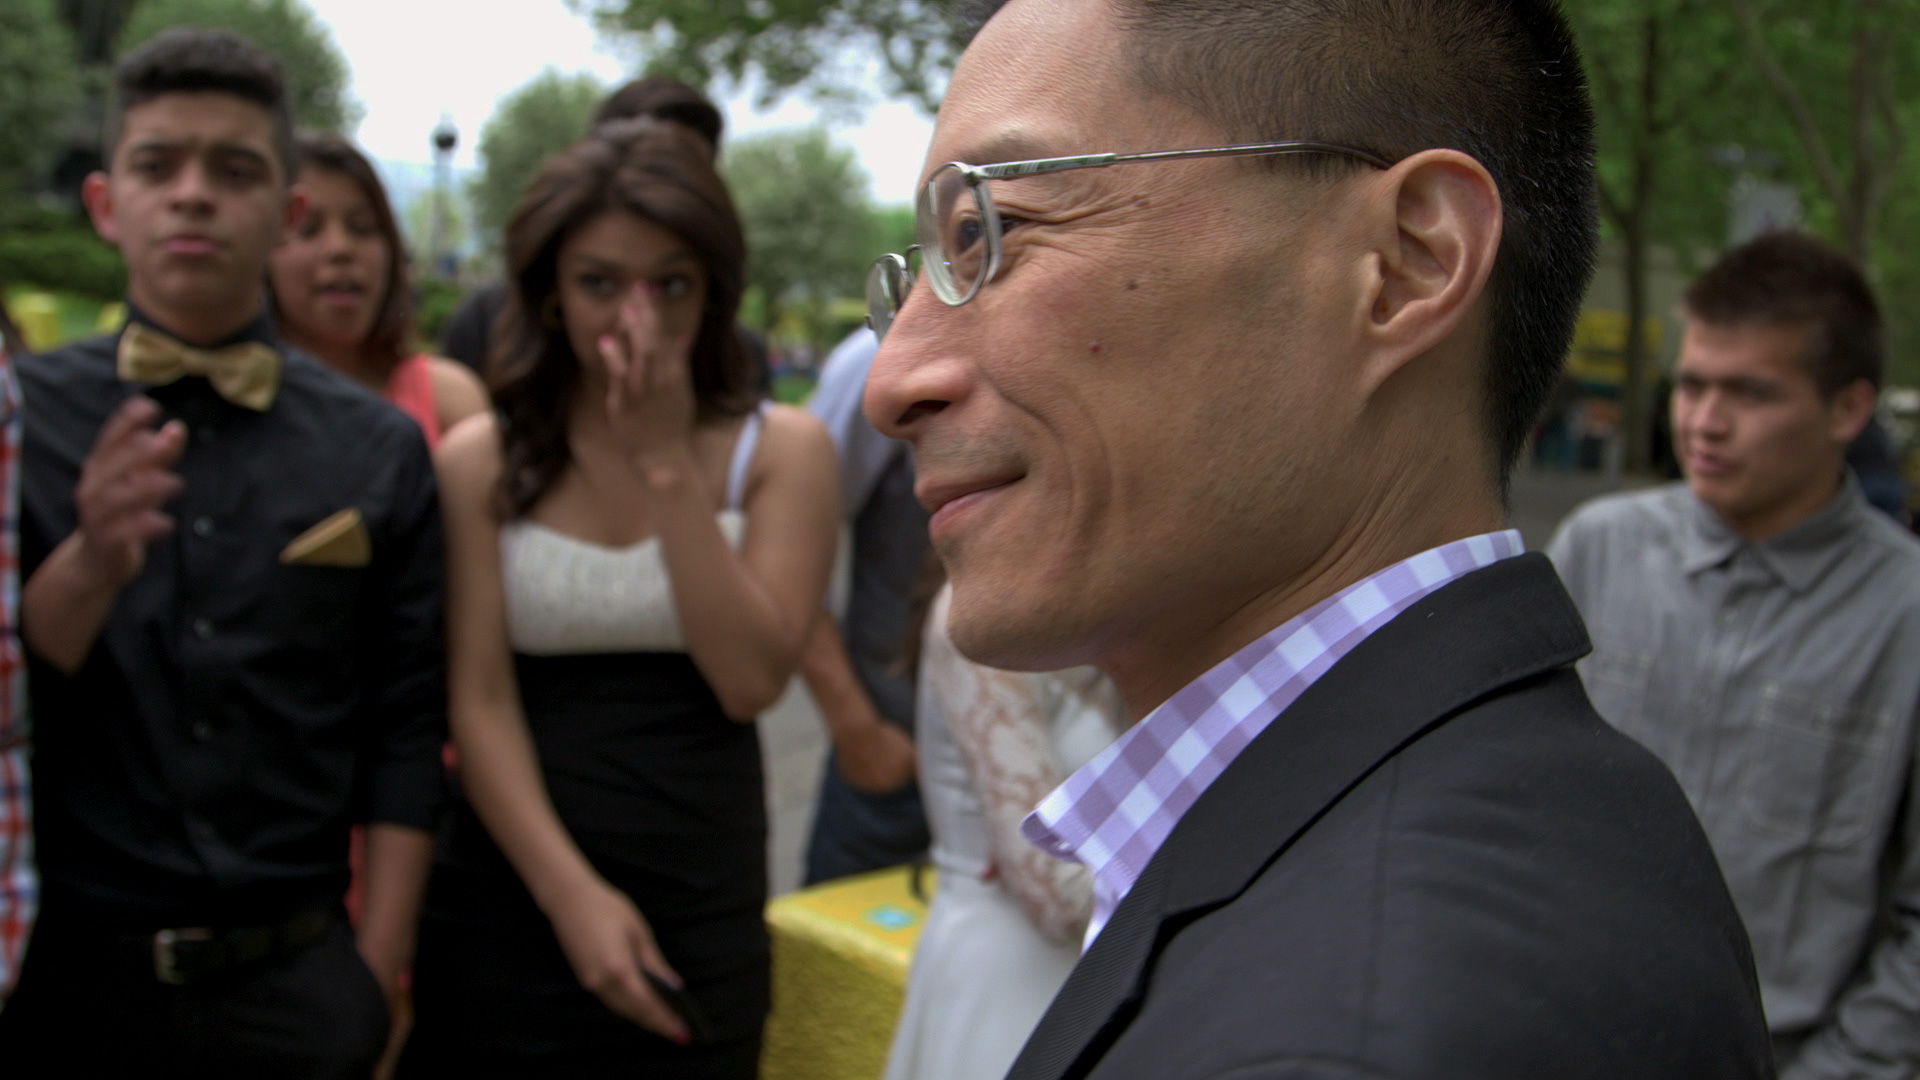 Eric_Liu_with_Quinceanera_Kids_AmericanCreed_72dpi.jpg